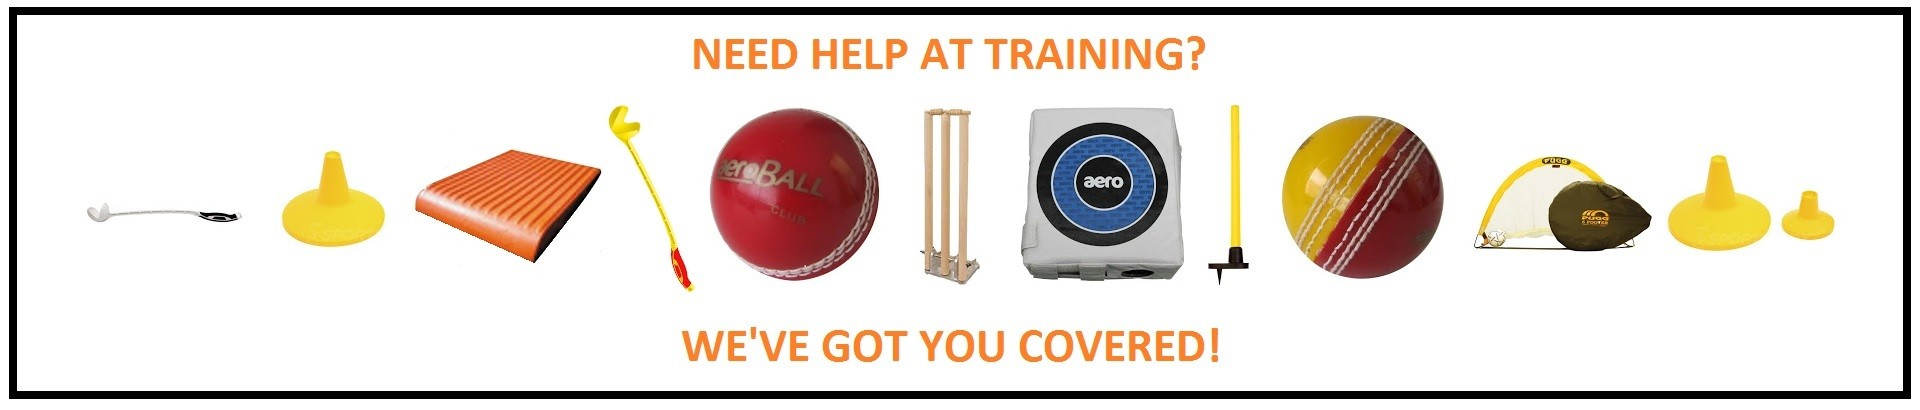 Cricket training aids